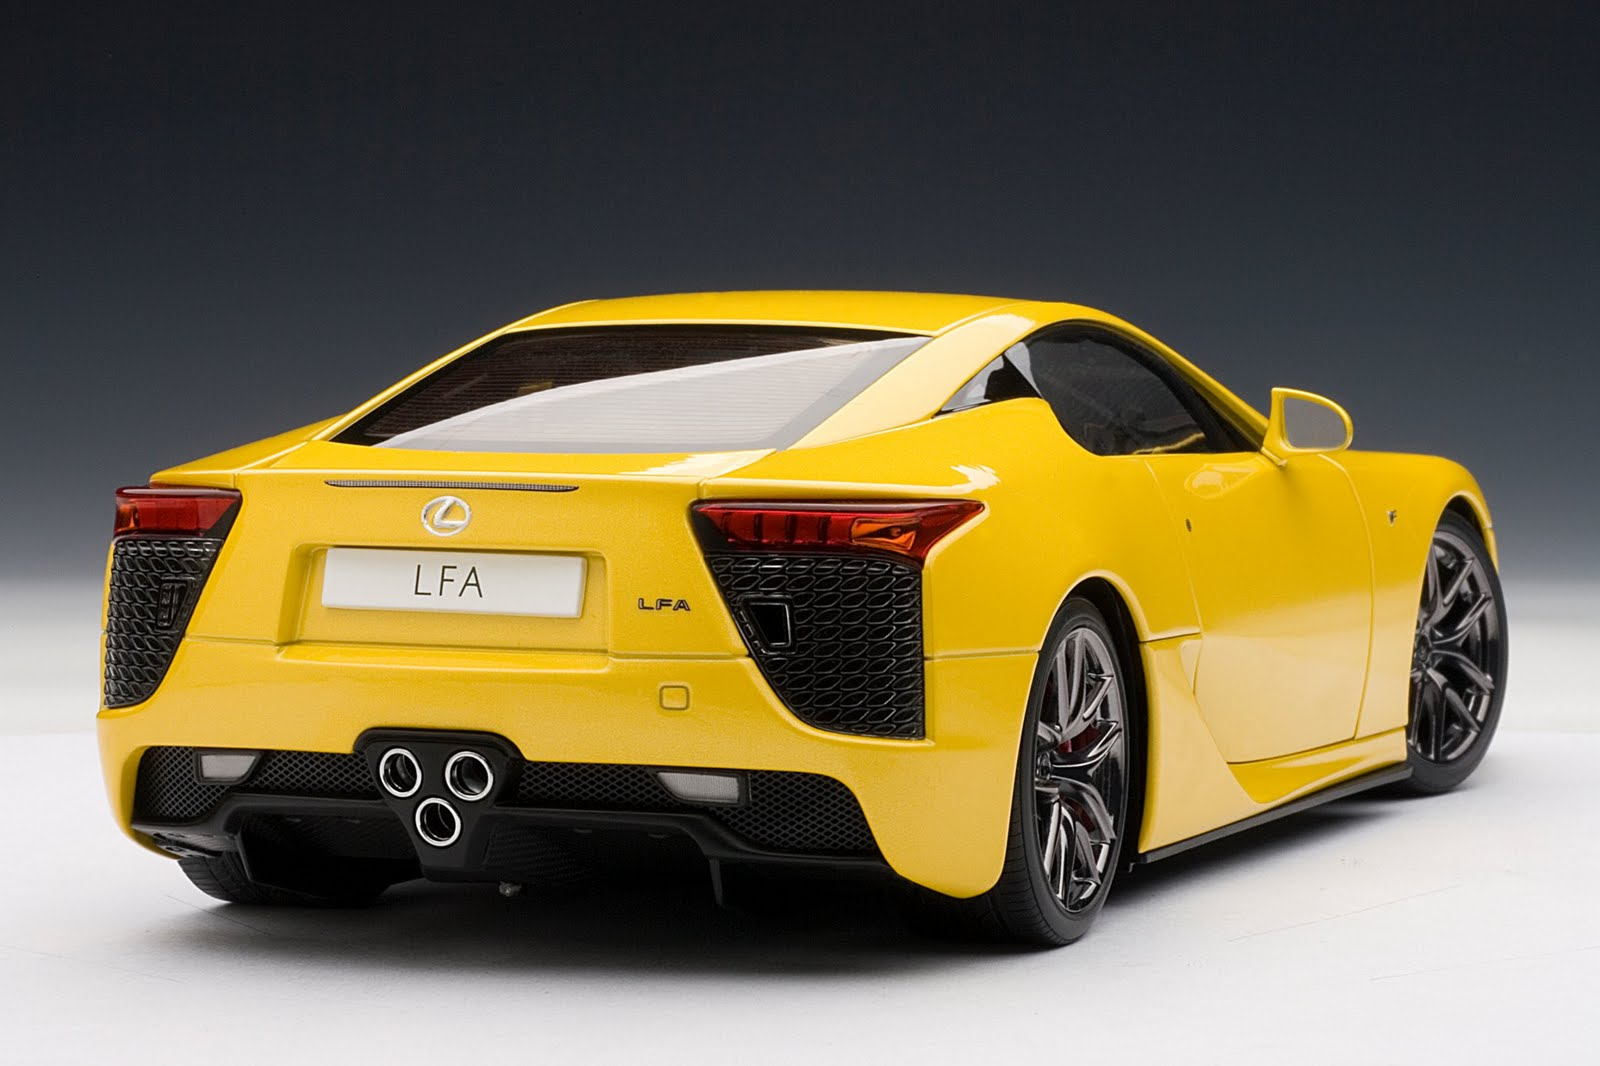 zt 39 s dream garage autoart lexus lfa in yellow. Black Bedroom Furniture Sets. Home Design Ideas